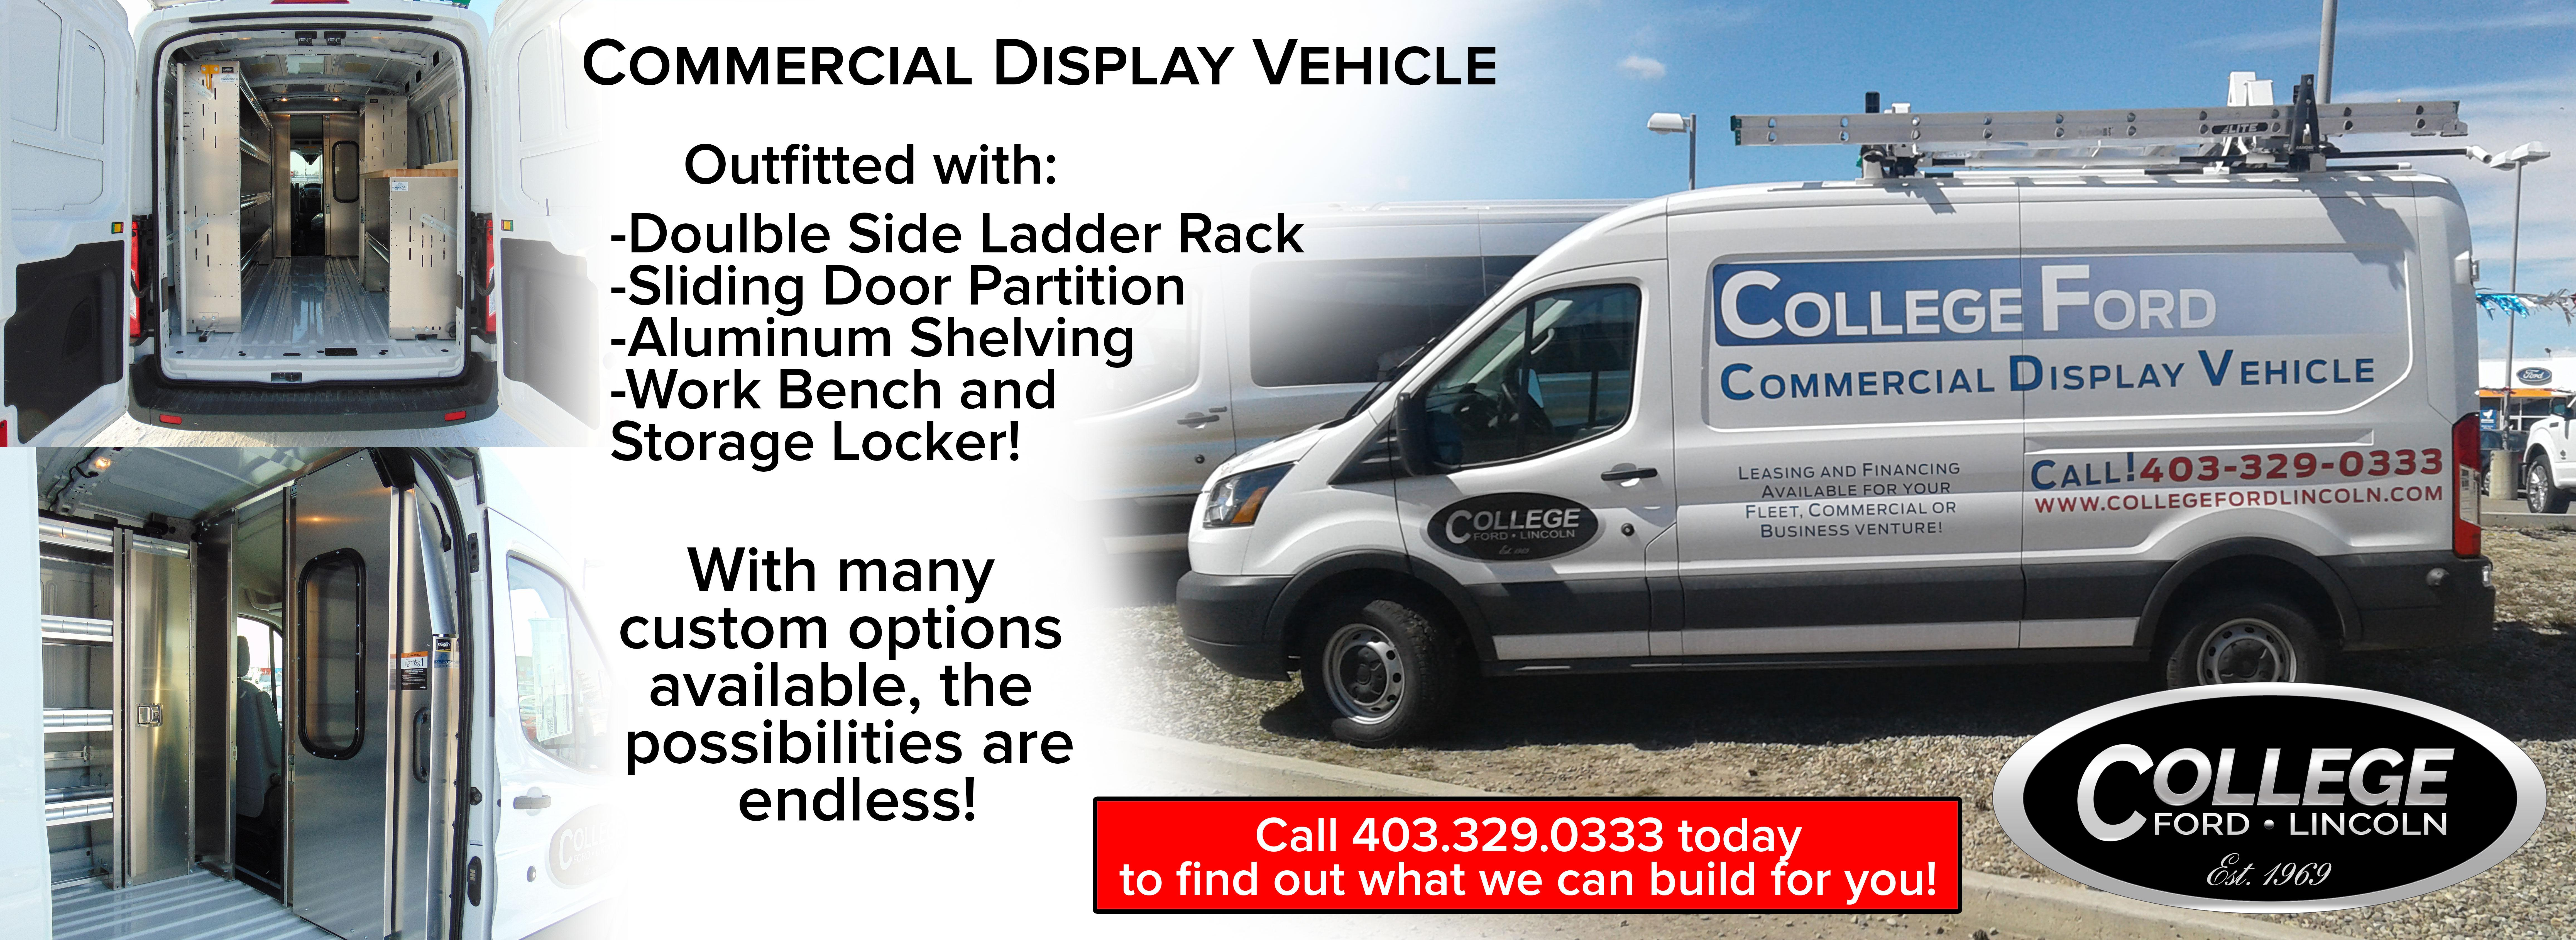 Commercial Display Vehicle